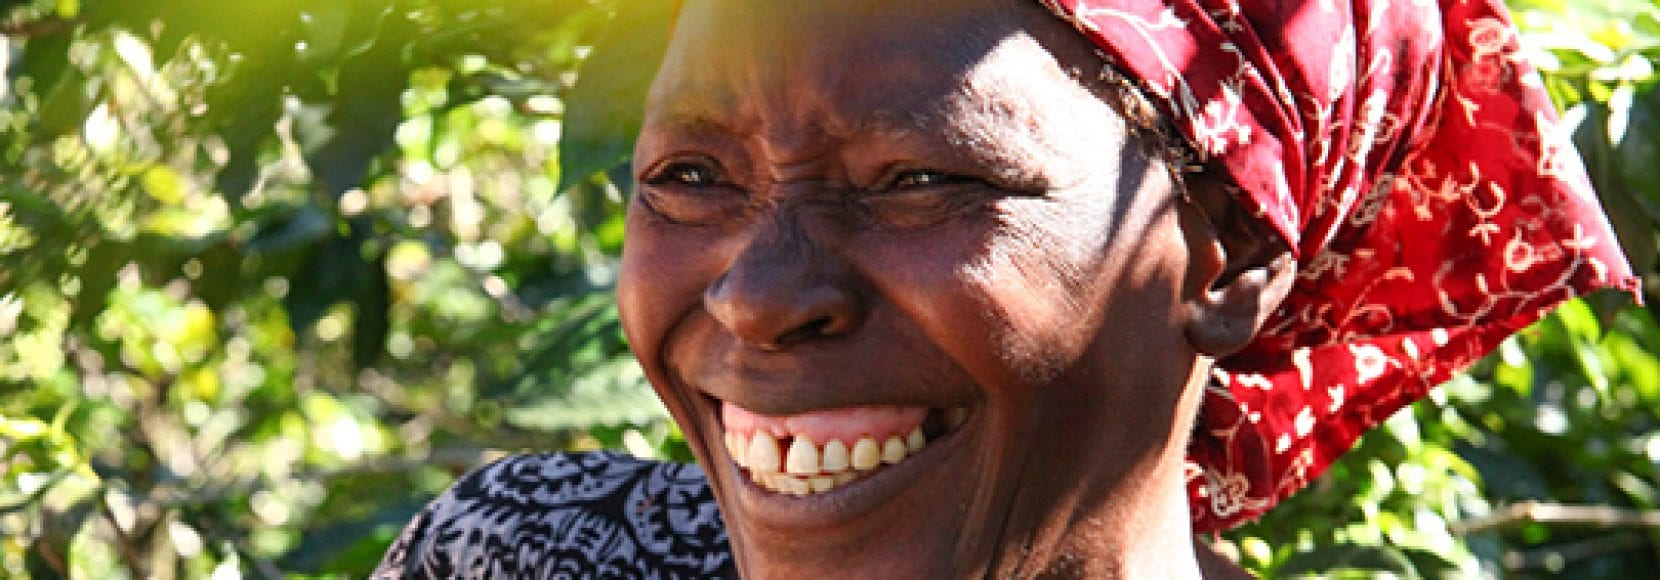 Woman smiling while working in Zimbabwe